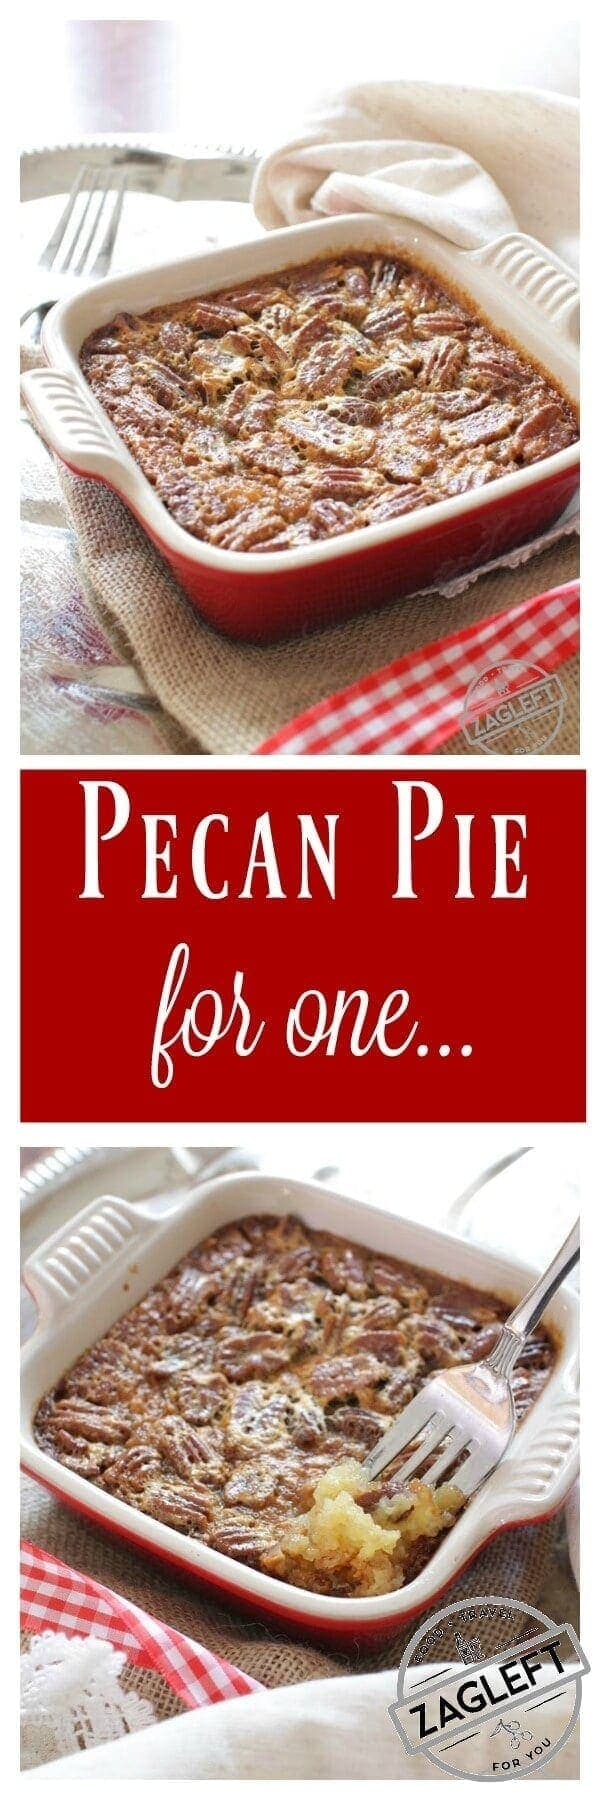 This Pecan Pie For One has all the flavors you love in a pecan pie. It's made with a buttery shortbread crust and a rich, pecan filled filling. This single serving dessert is perfectly sweet, it's filled with pecans and best of all, it's easy to make. | One Dish Kitchen